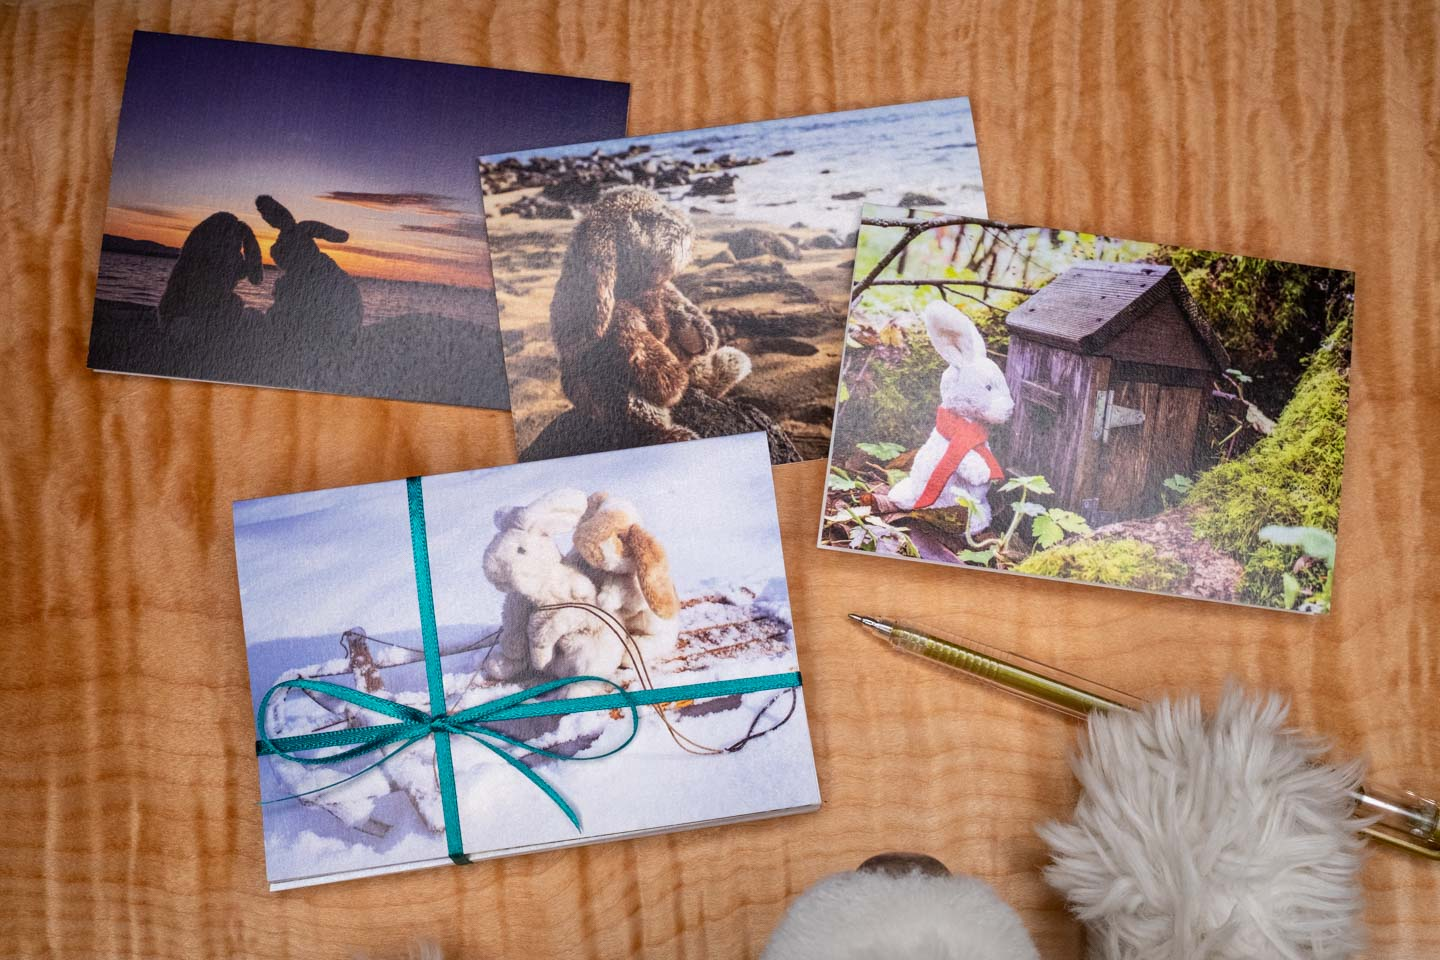 Teddy bear writing on notecards with stuffed animal images on them